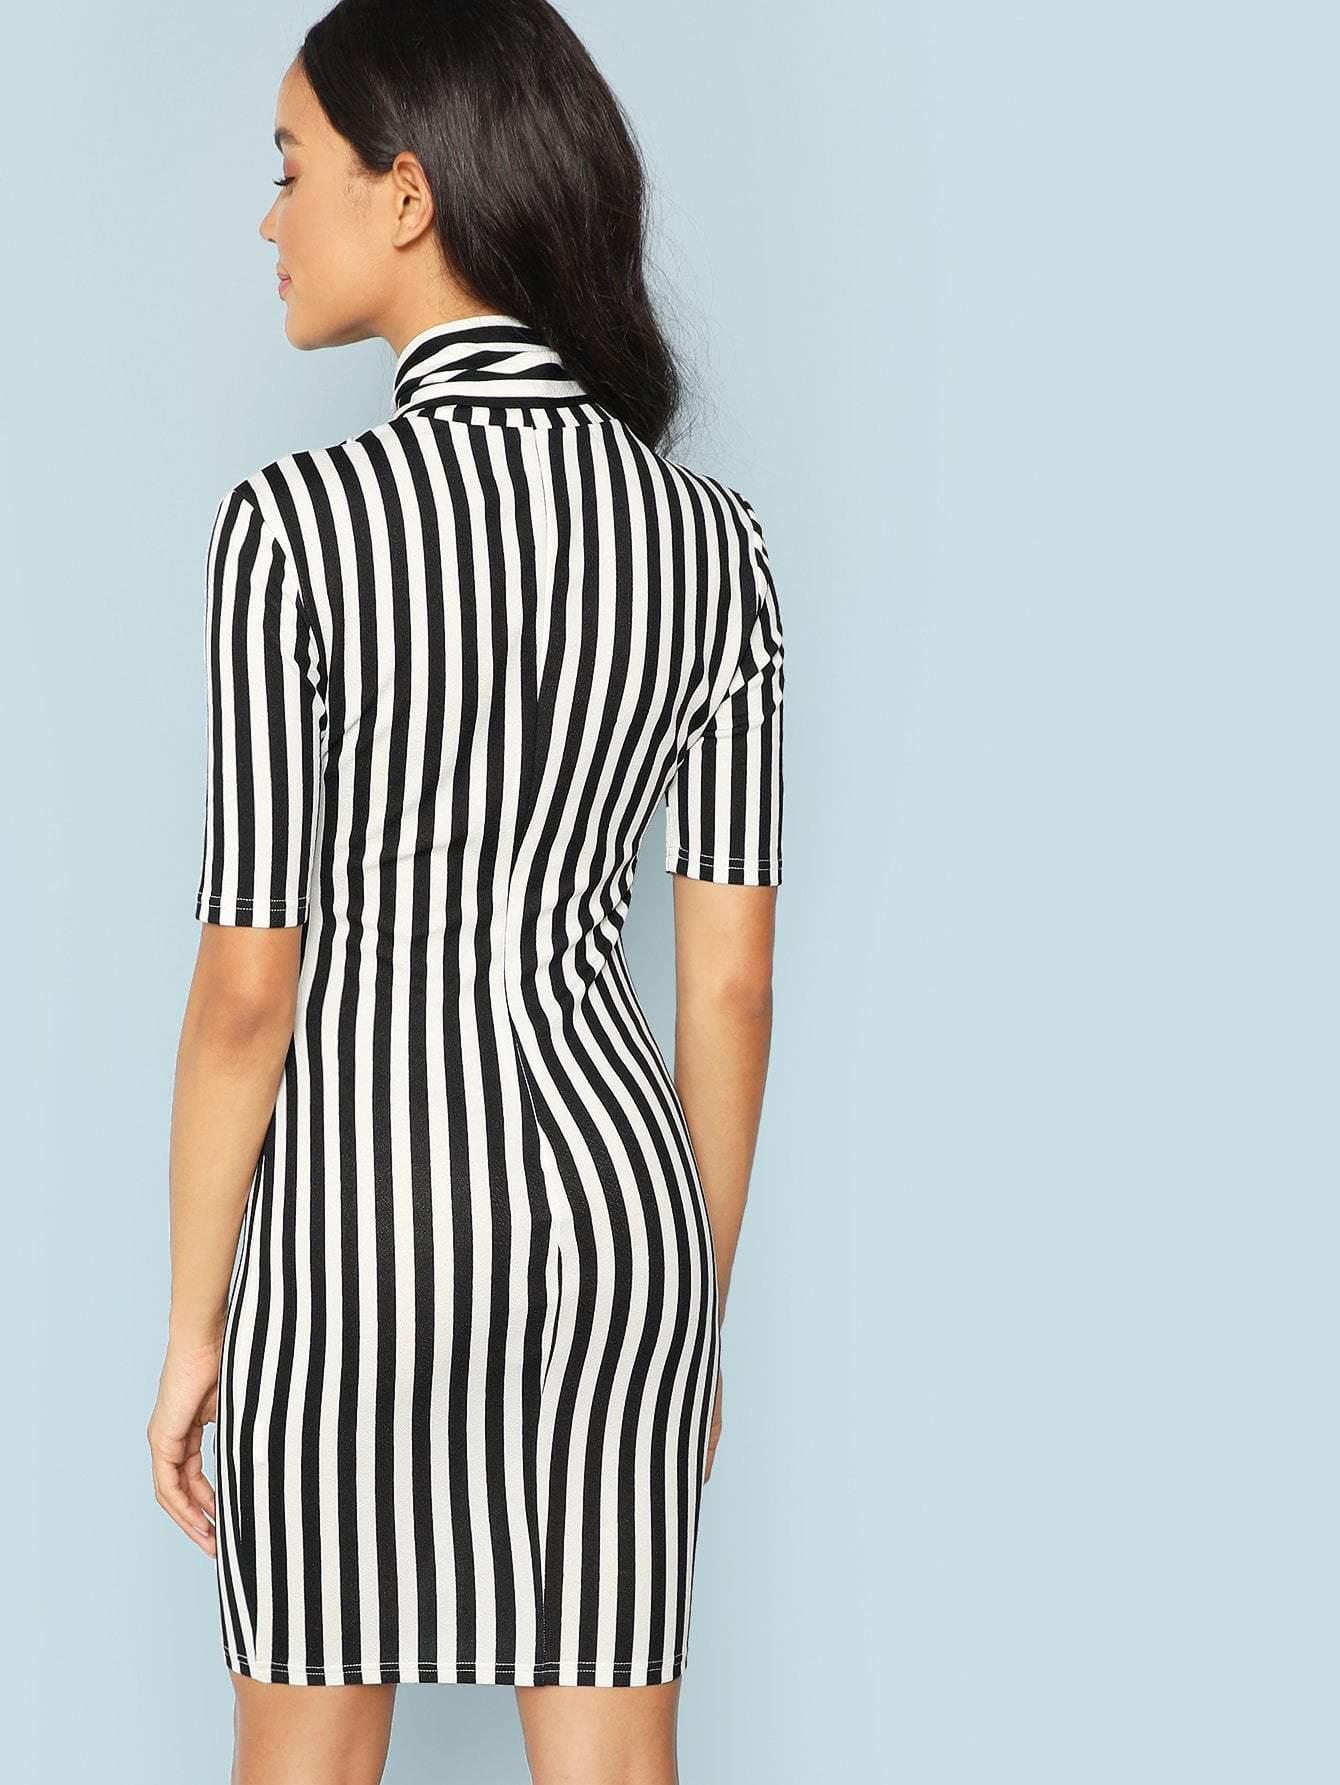 Striped Pencil Dress - LoveSylvester